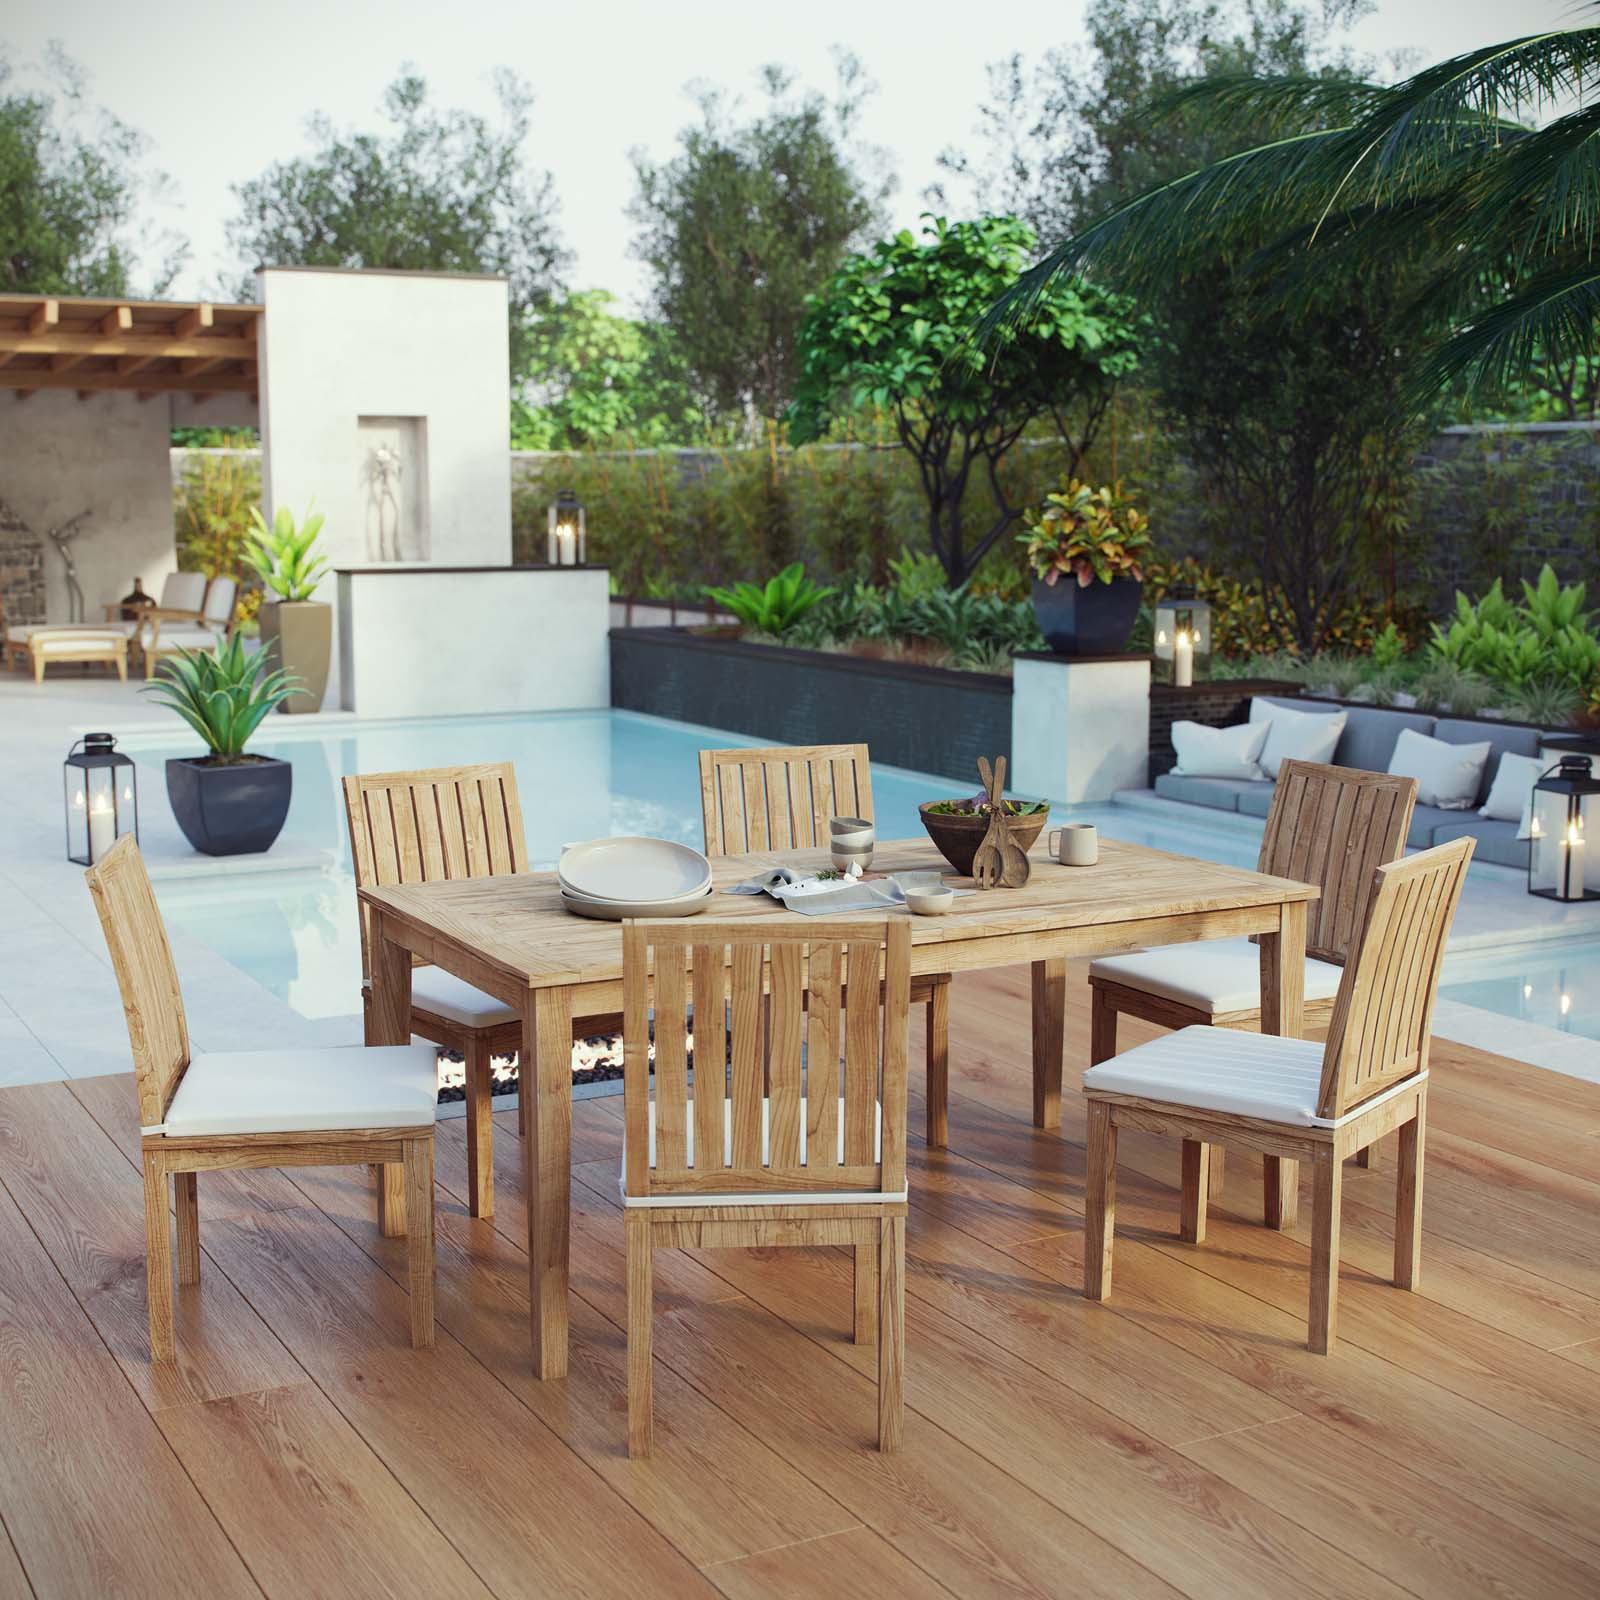 Modway Marina 7 Piece Outdoor Patio Teak Outdoor Dining Set in Natural White - Walmart.com ...